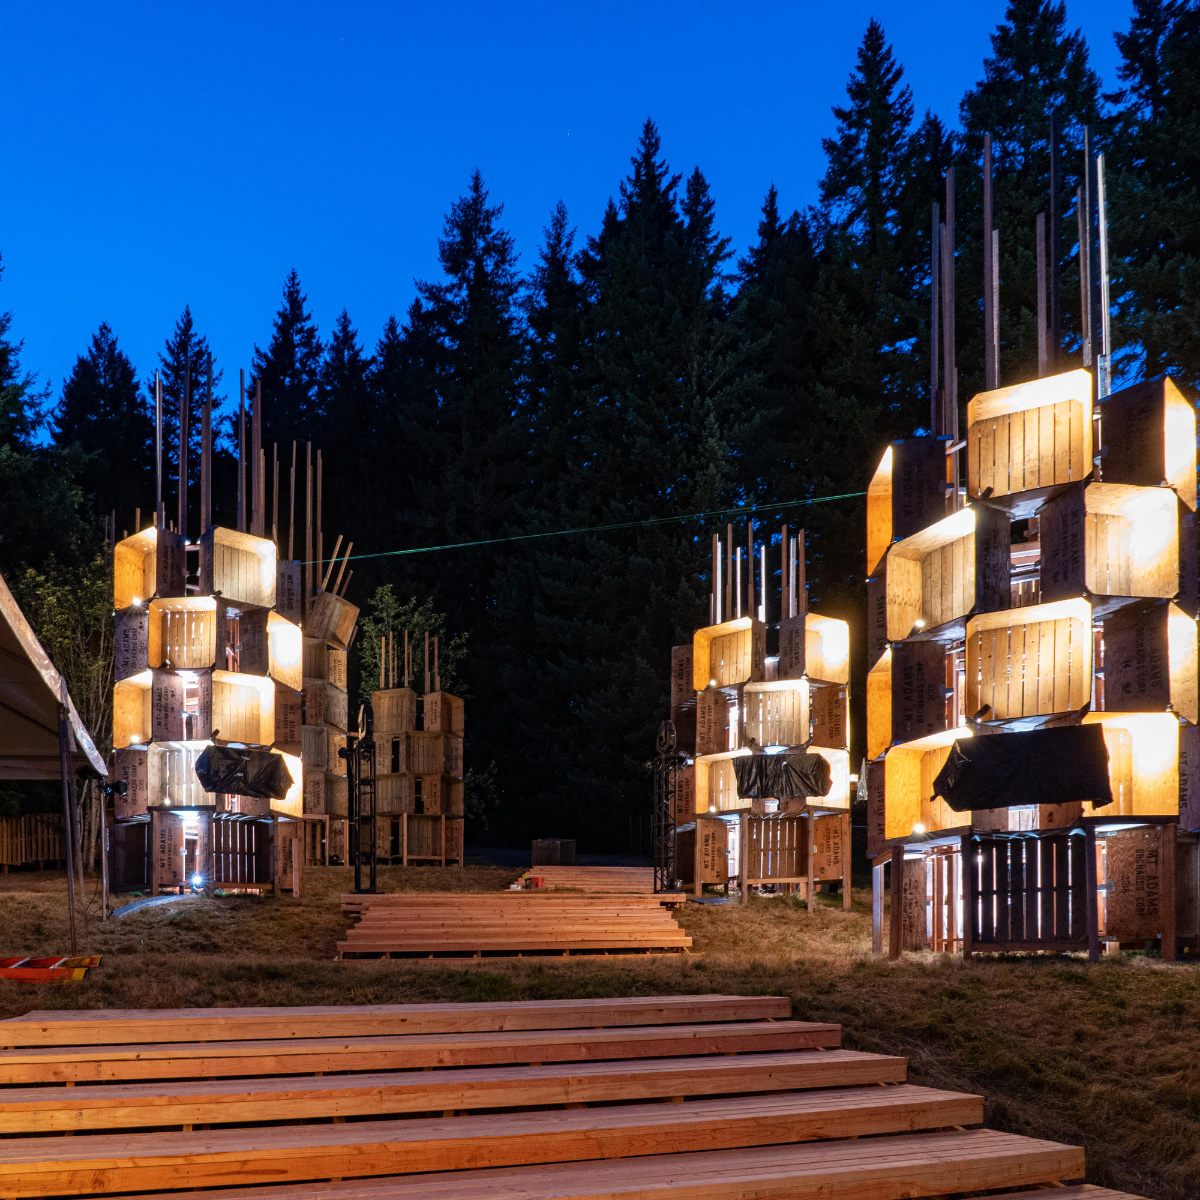 Photo of towers at night made from wooden apple bins, on the PSU campus for the Pickathon Music Festival